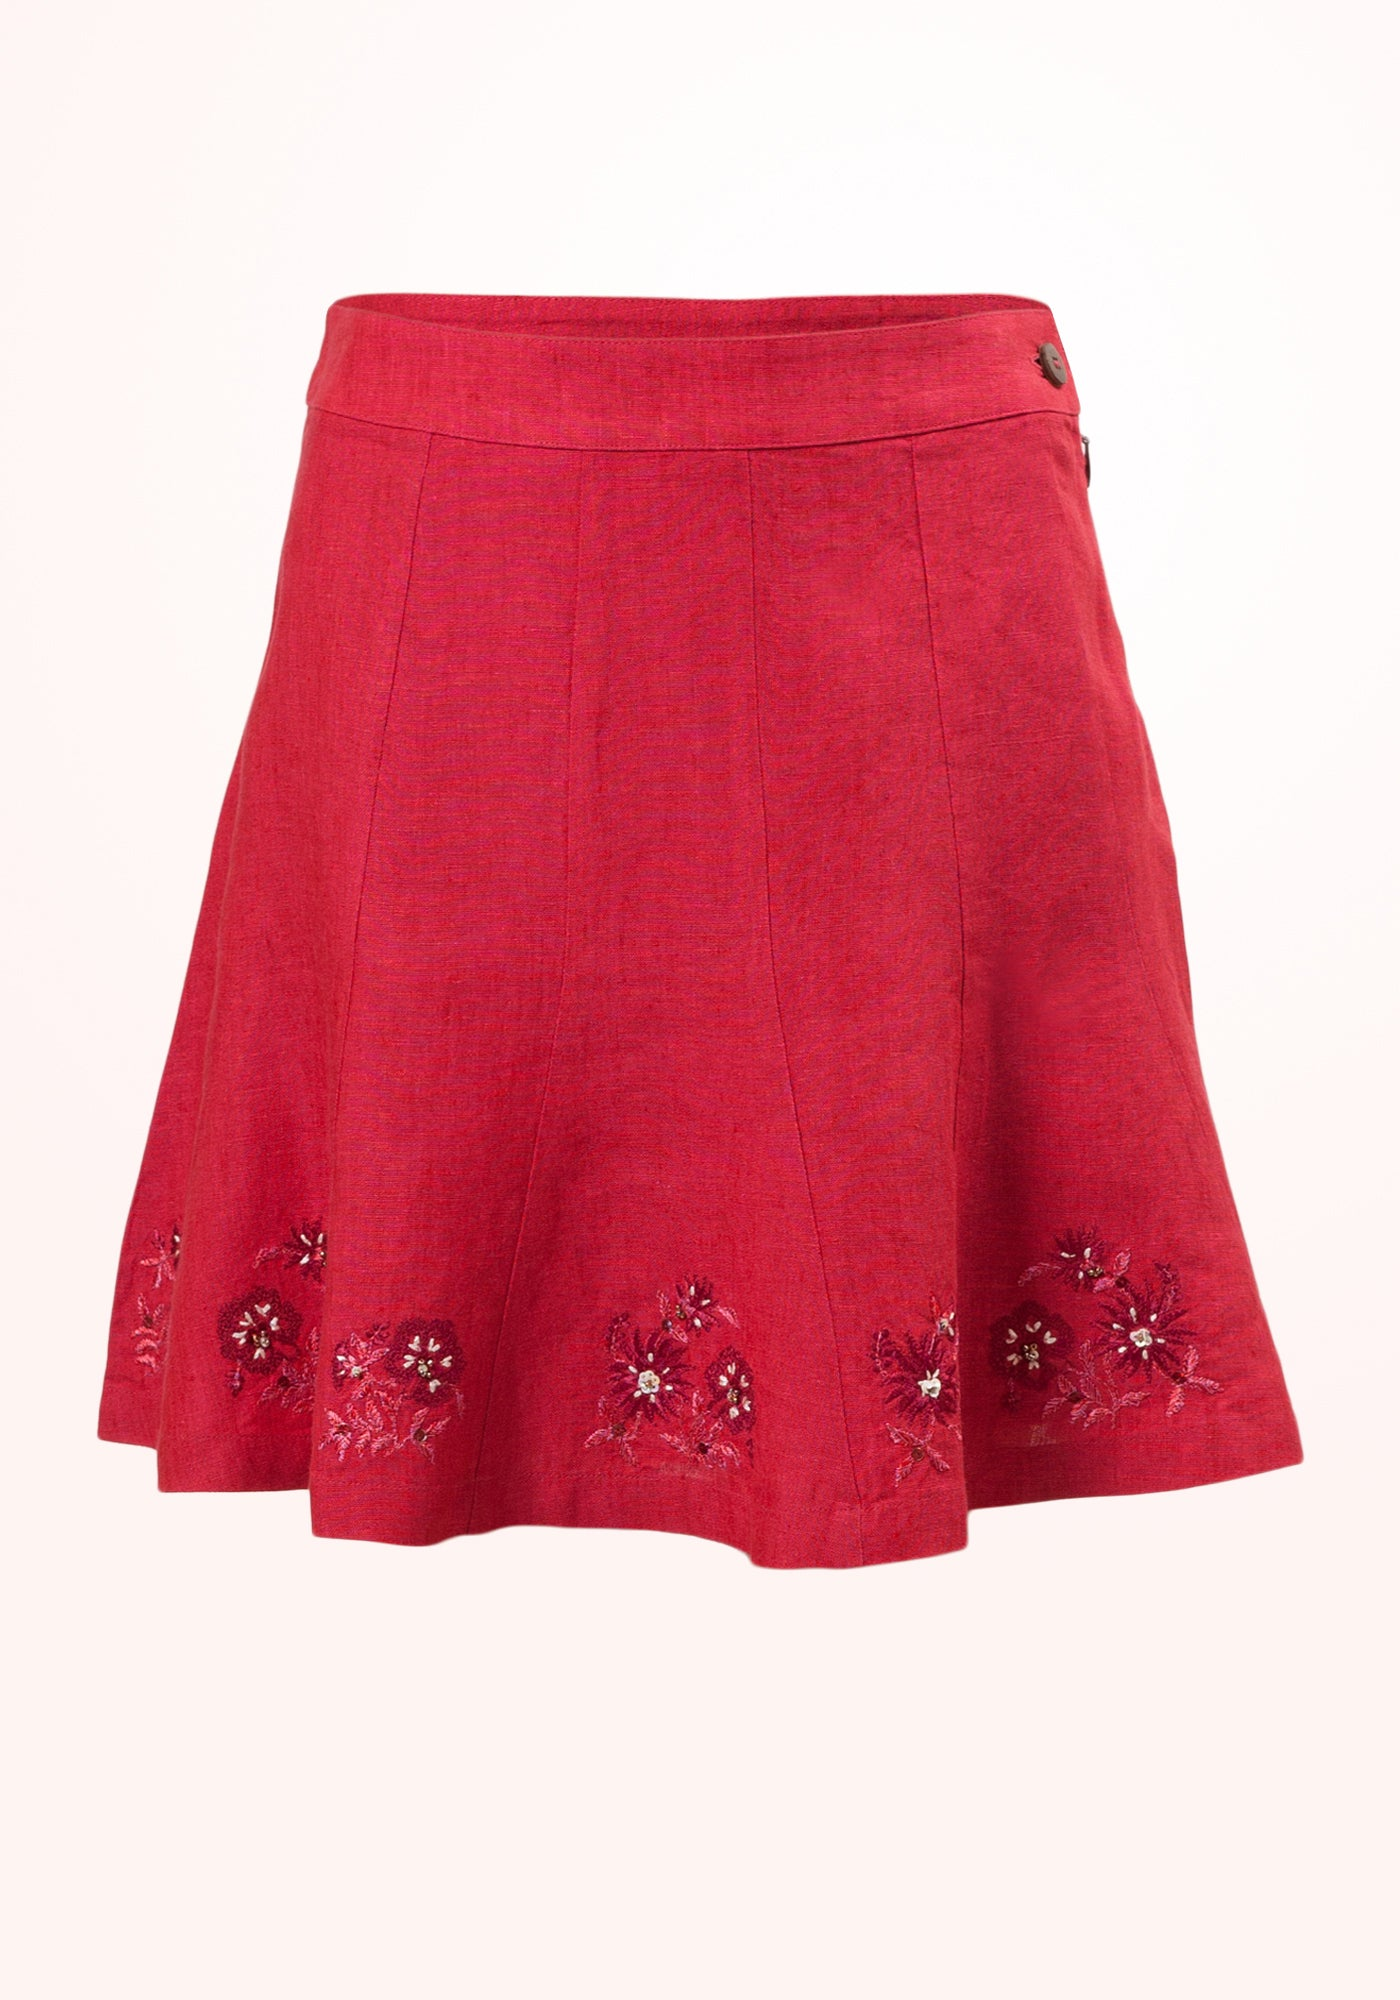 Raspberry Ice Girls Skirt in Fuchsia Linen - MINC ecofashion